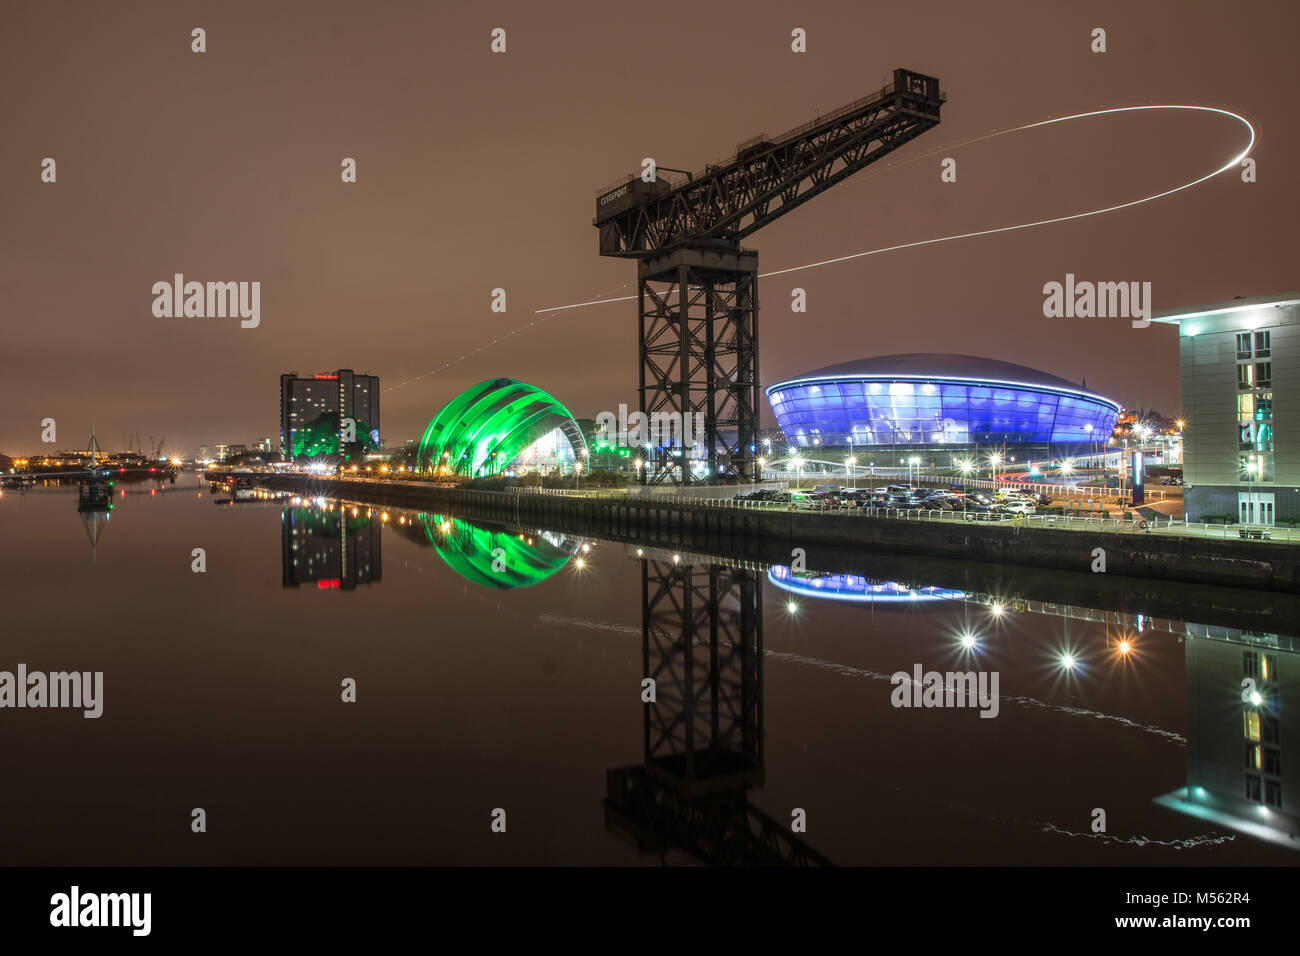 A shot of the Hydro and The Armadillo at the SECC, Glasgow. The Light trail is a helicopter which doubled back giving - Stock Image